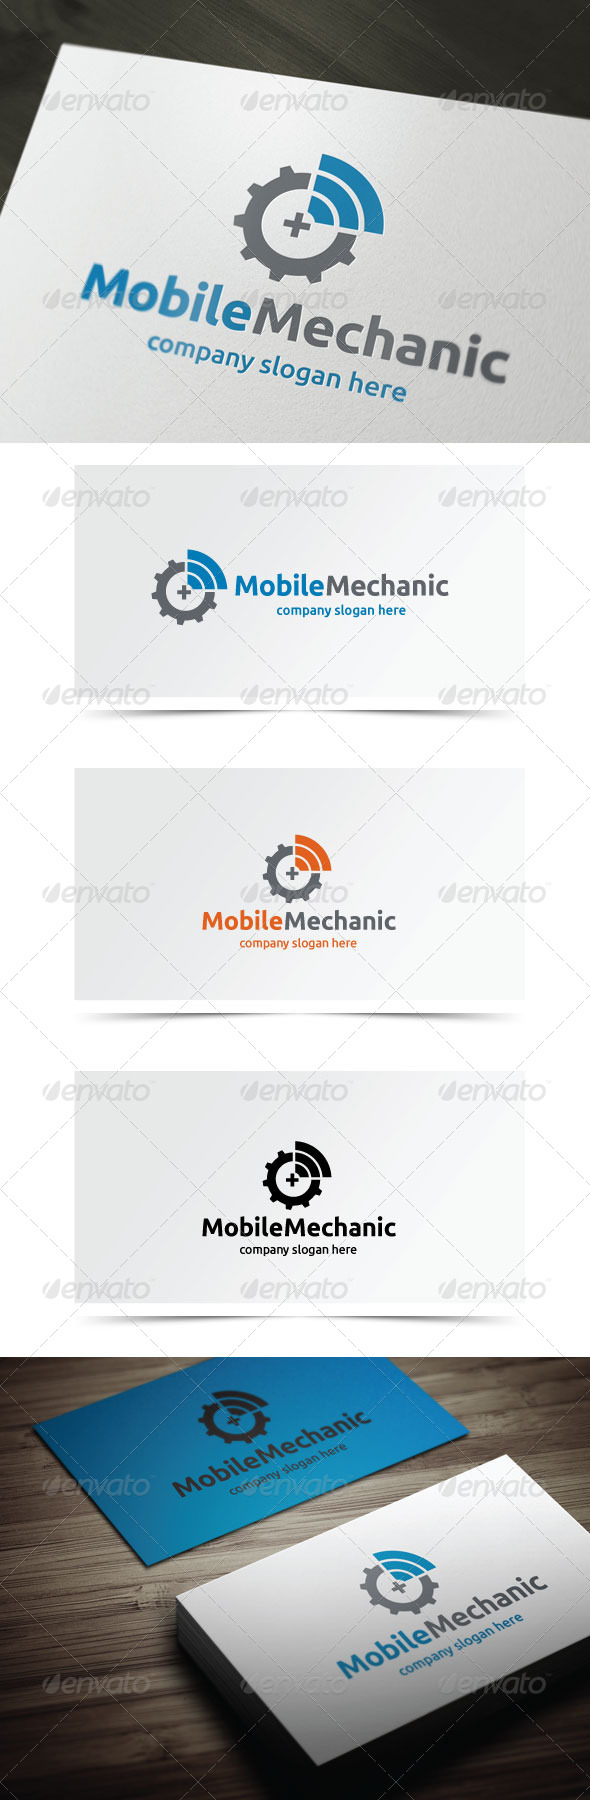 Mobile Mechanic - Symbols Logo Templates